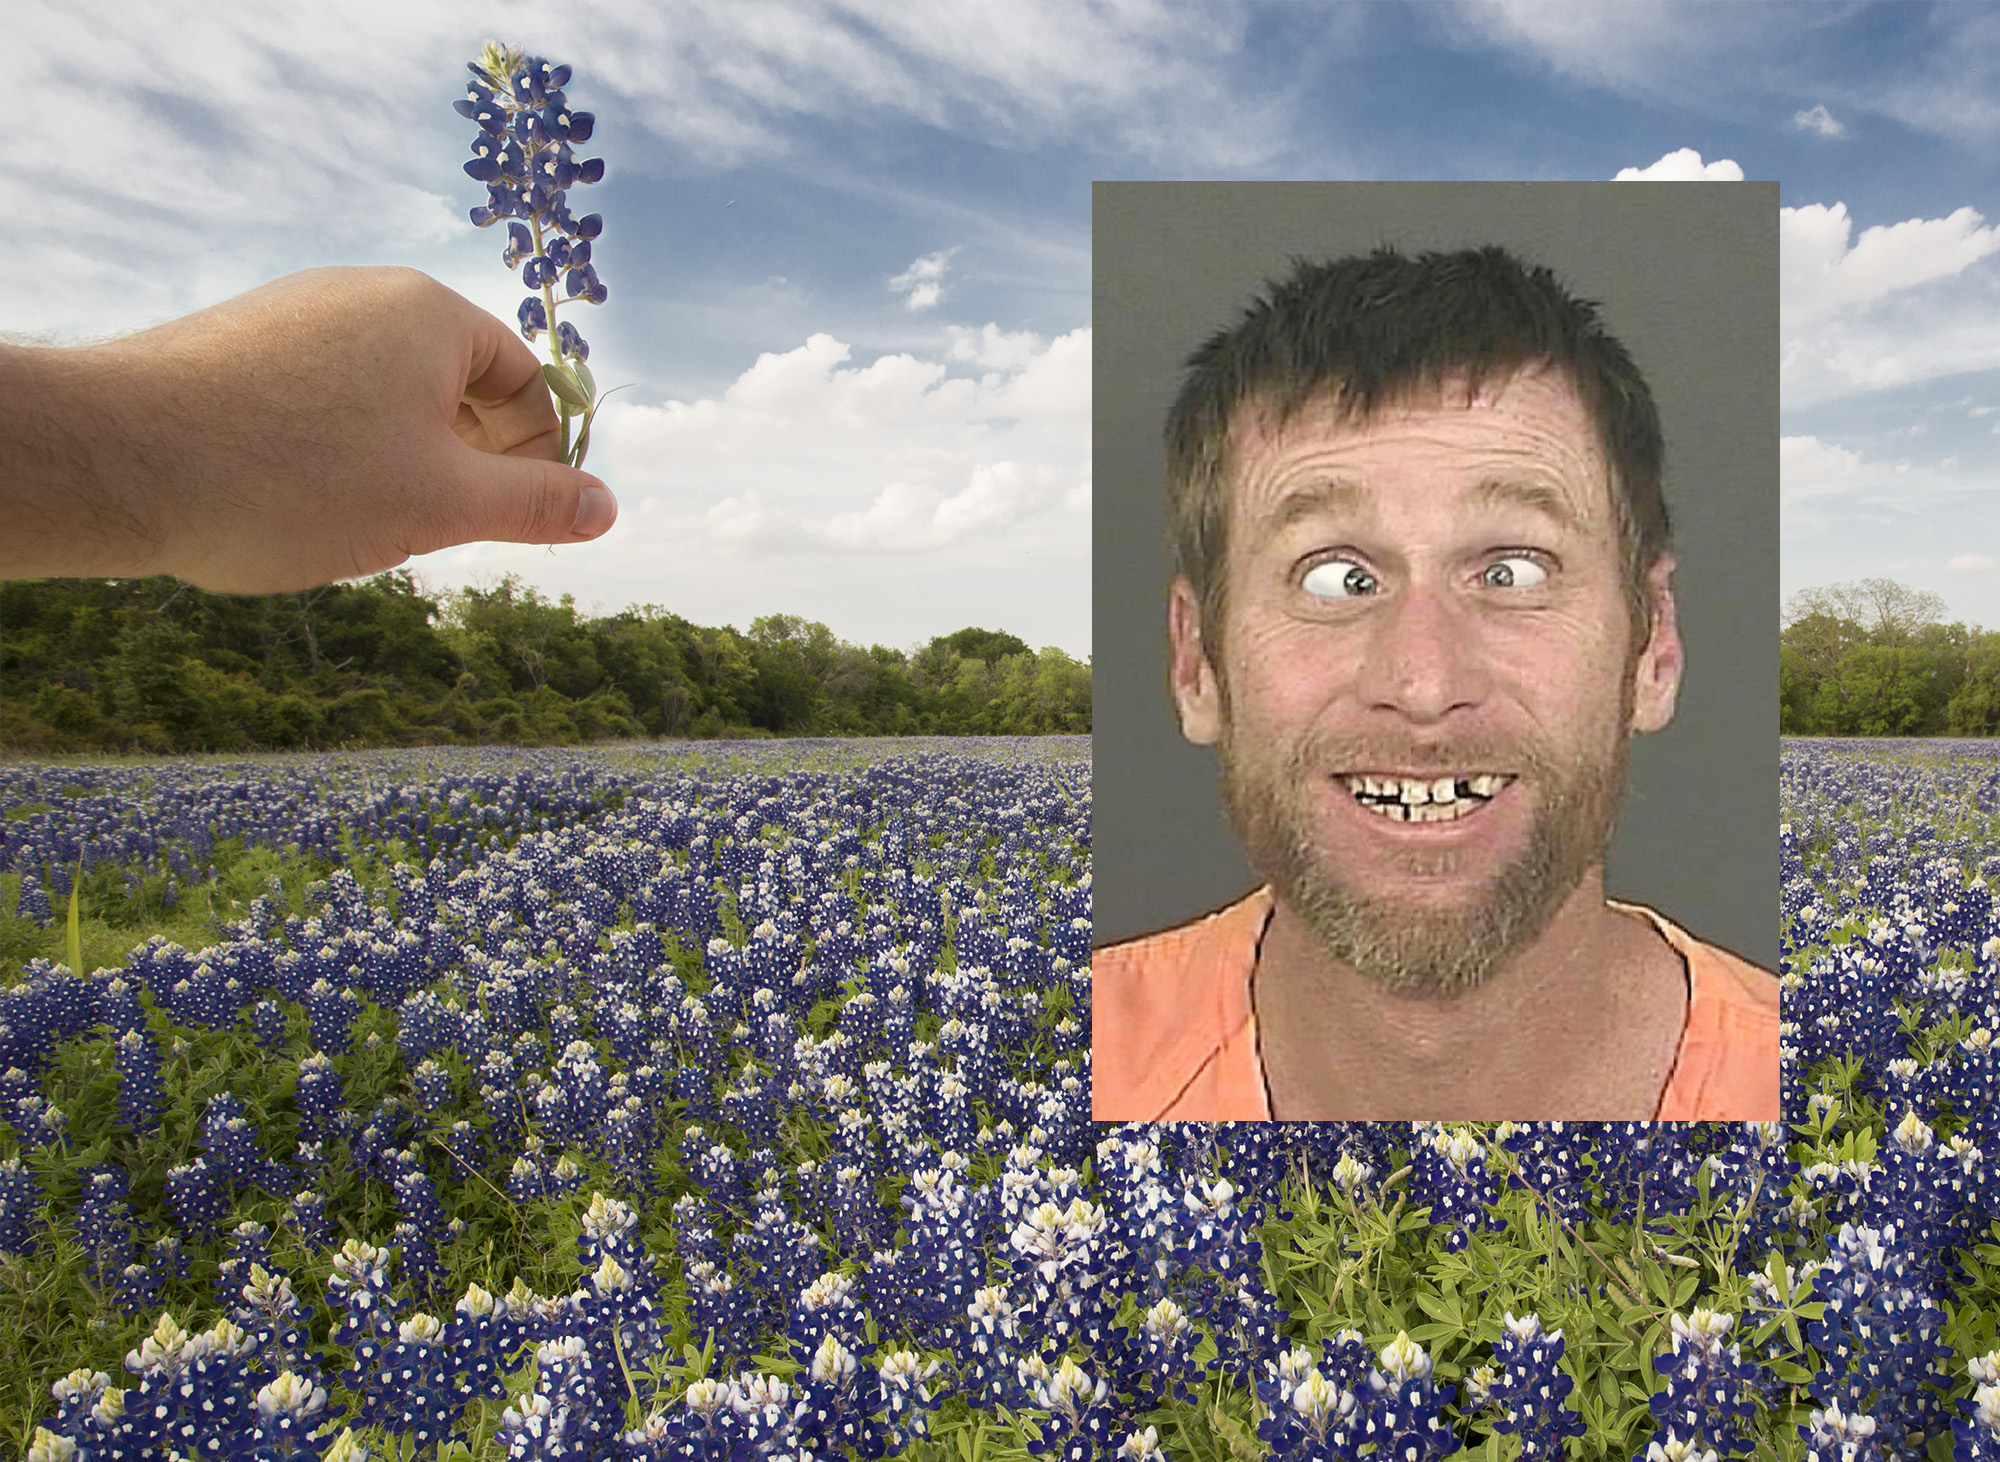 Texas Man Charged with Felony Herbicide for Picking Bluebonnets